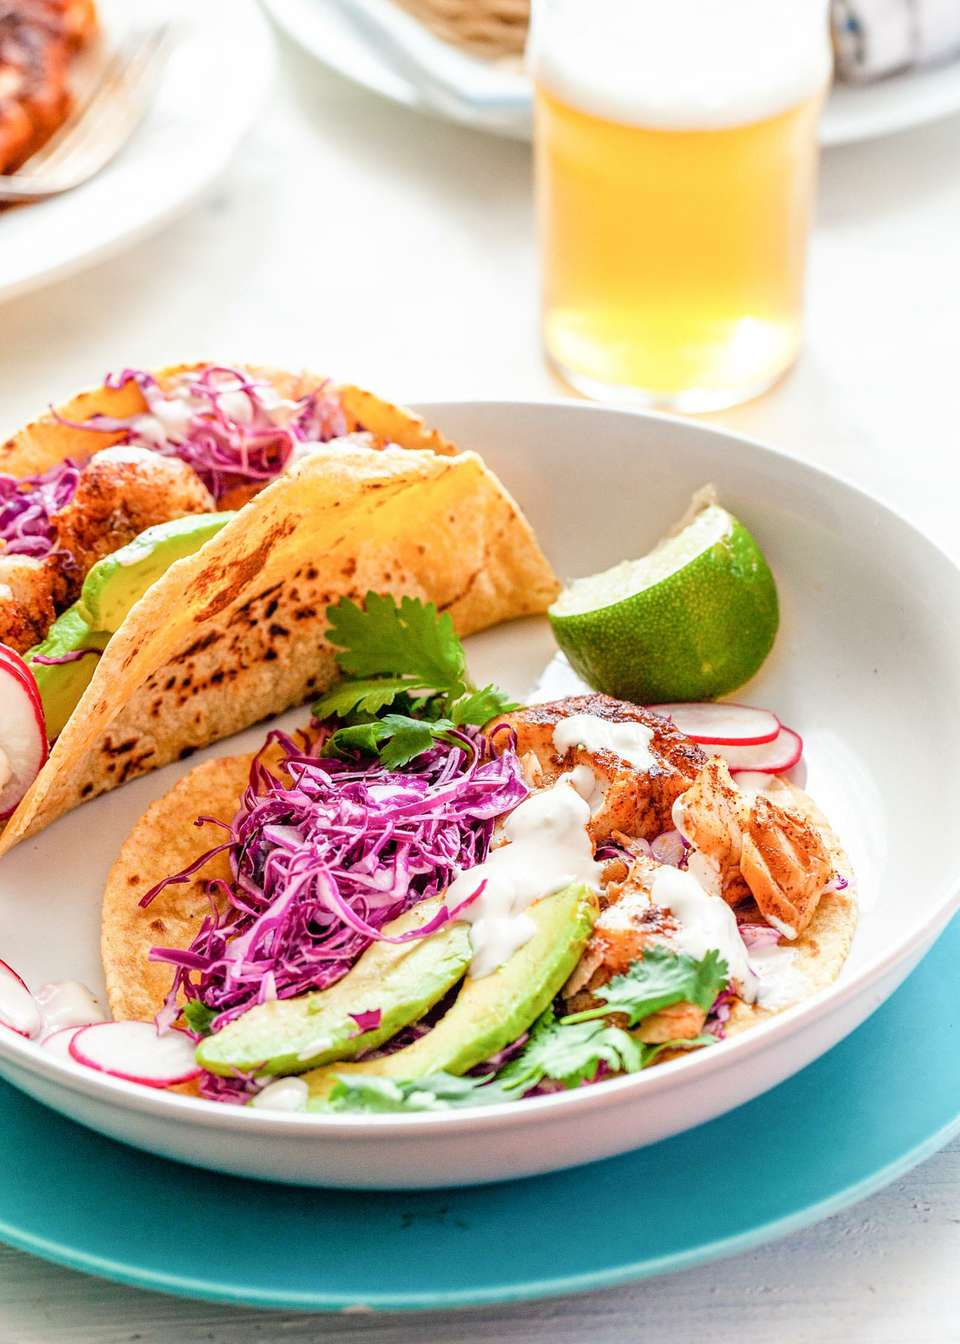 The best fish tacos on a plate. Corn tortillas layered with fish, cabbage, avocado, cilantro and lime.